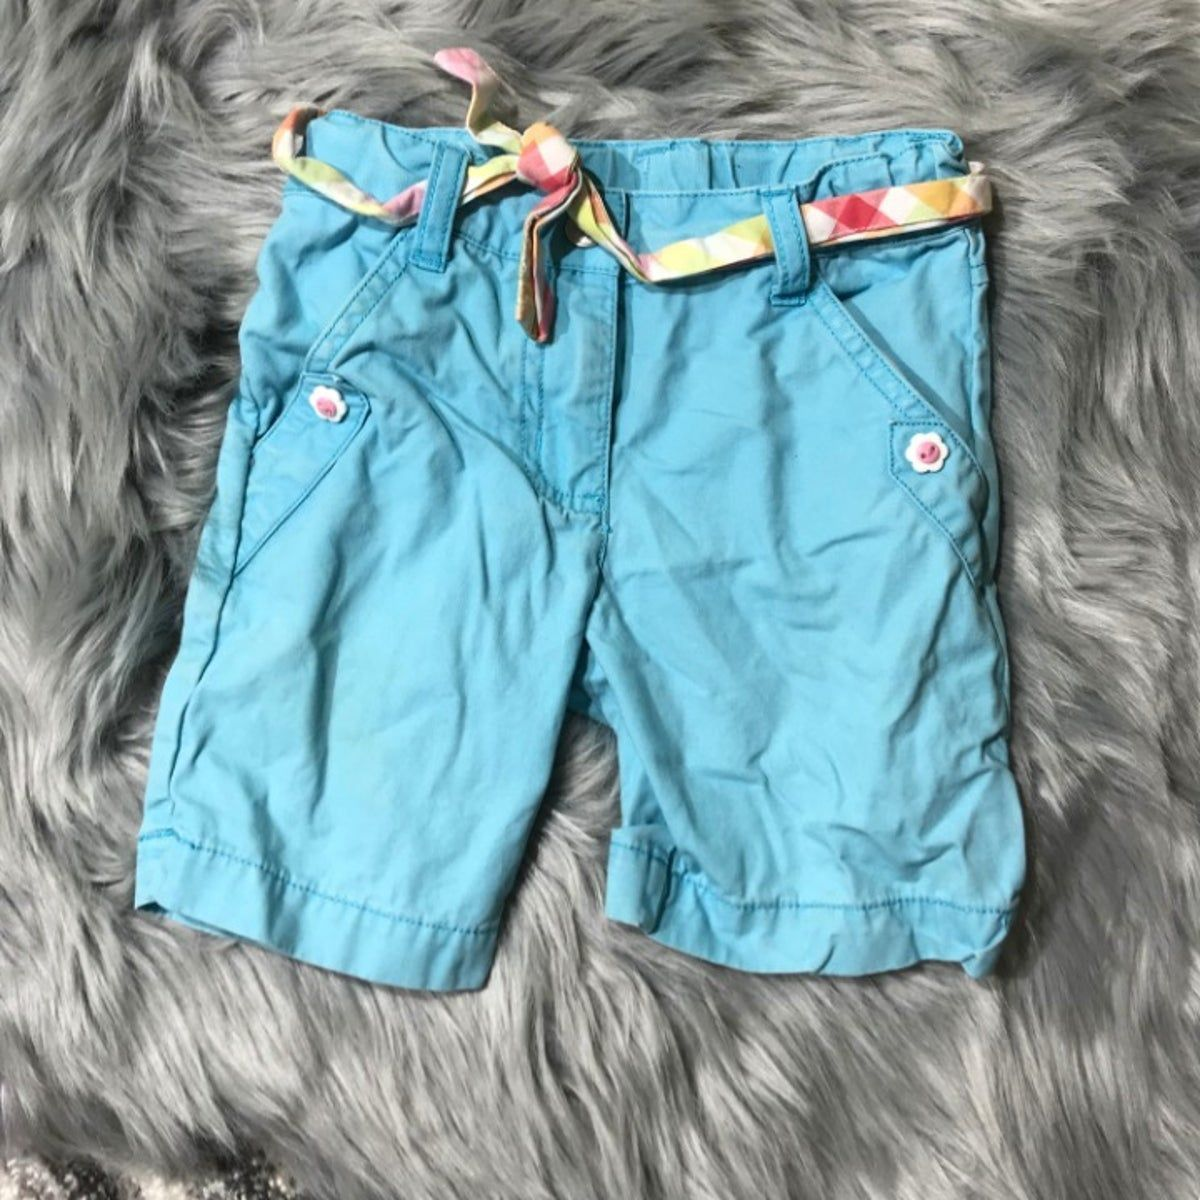 Gymboree light blue Bermuda shorts girl #lightblueshorts Gymboree light blue Bermuda shorts girl #lightblueshorts Gymboree light blue Bermuda shorts girl #lightblueshorts Gymboree light blue Bermuda shorts girl #lightblueshorts